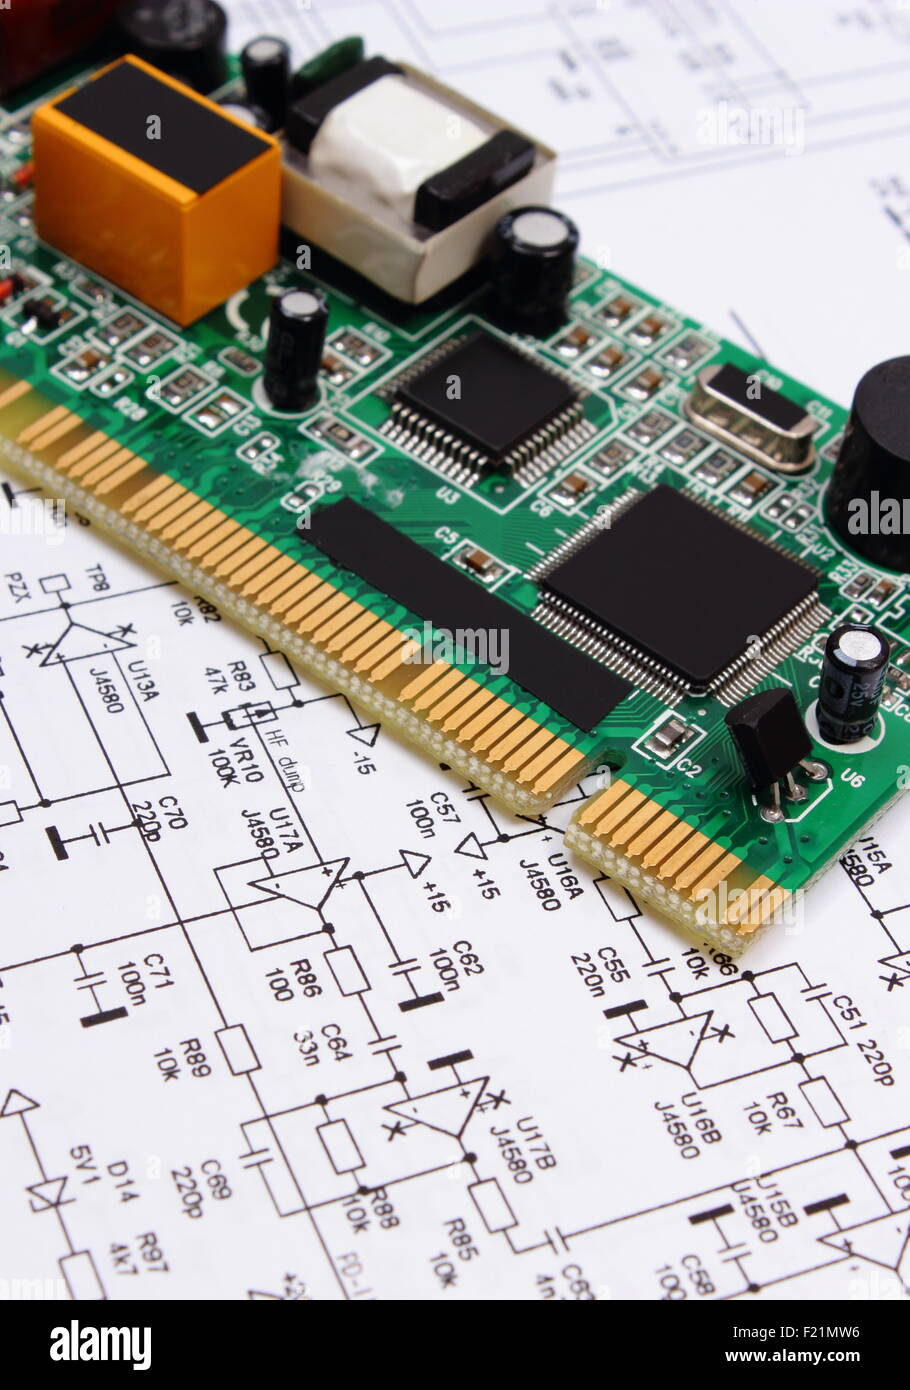 Printed Circuit Board Drawing Stock Photos Multilayer Wiring With Electrical Components Lying On Construction Of Electronics Drawings For Engineer